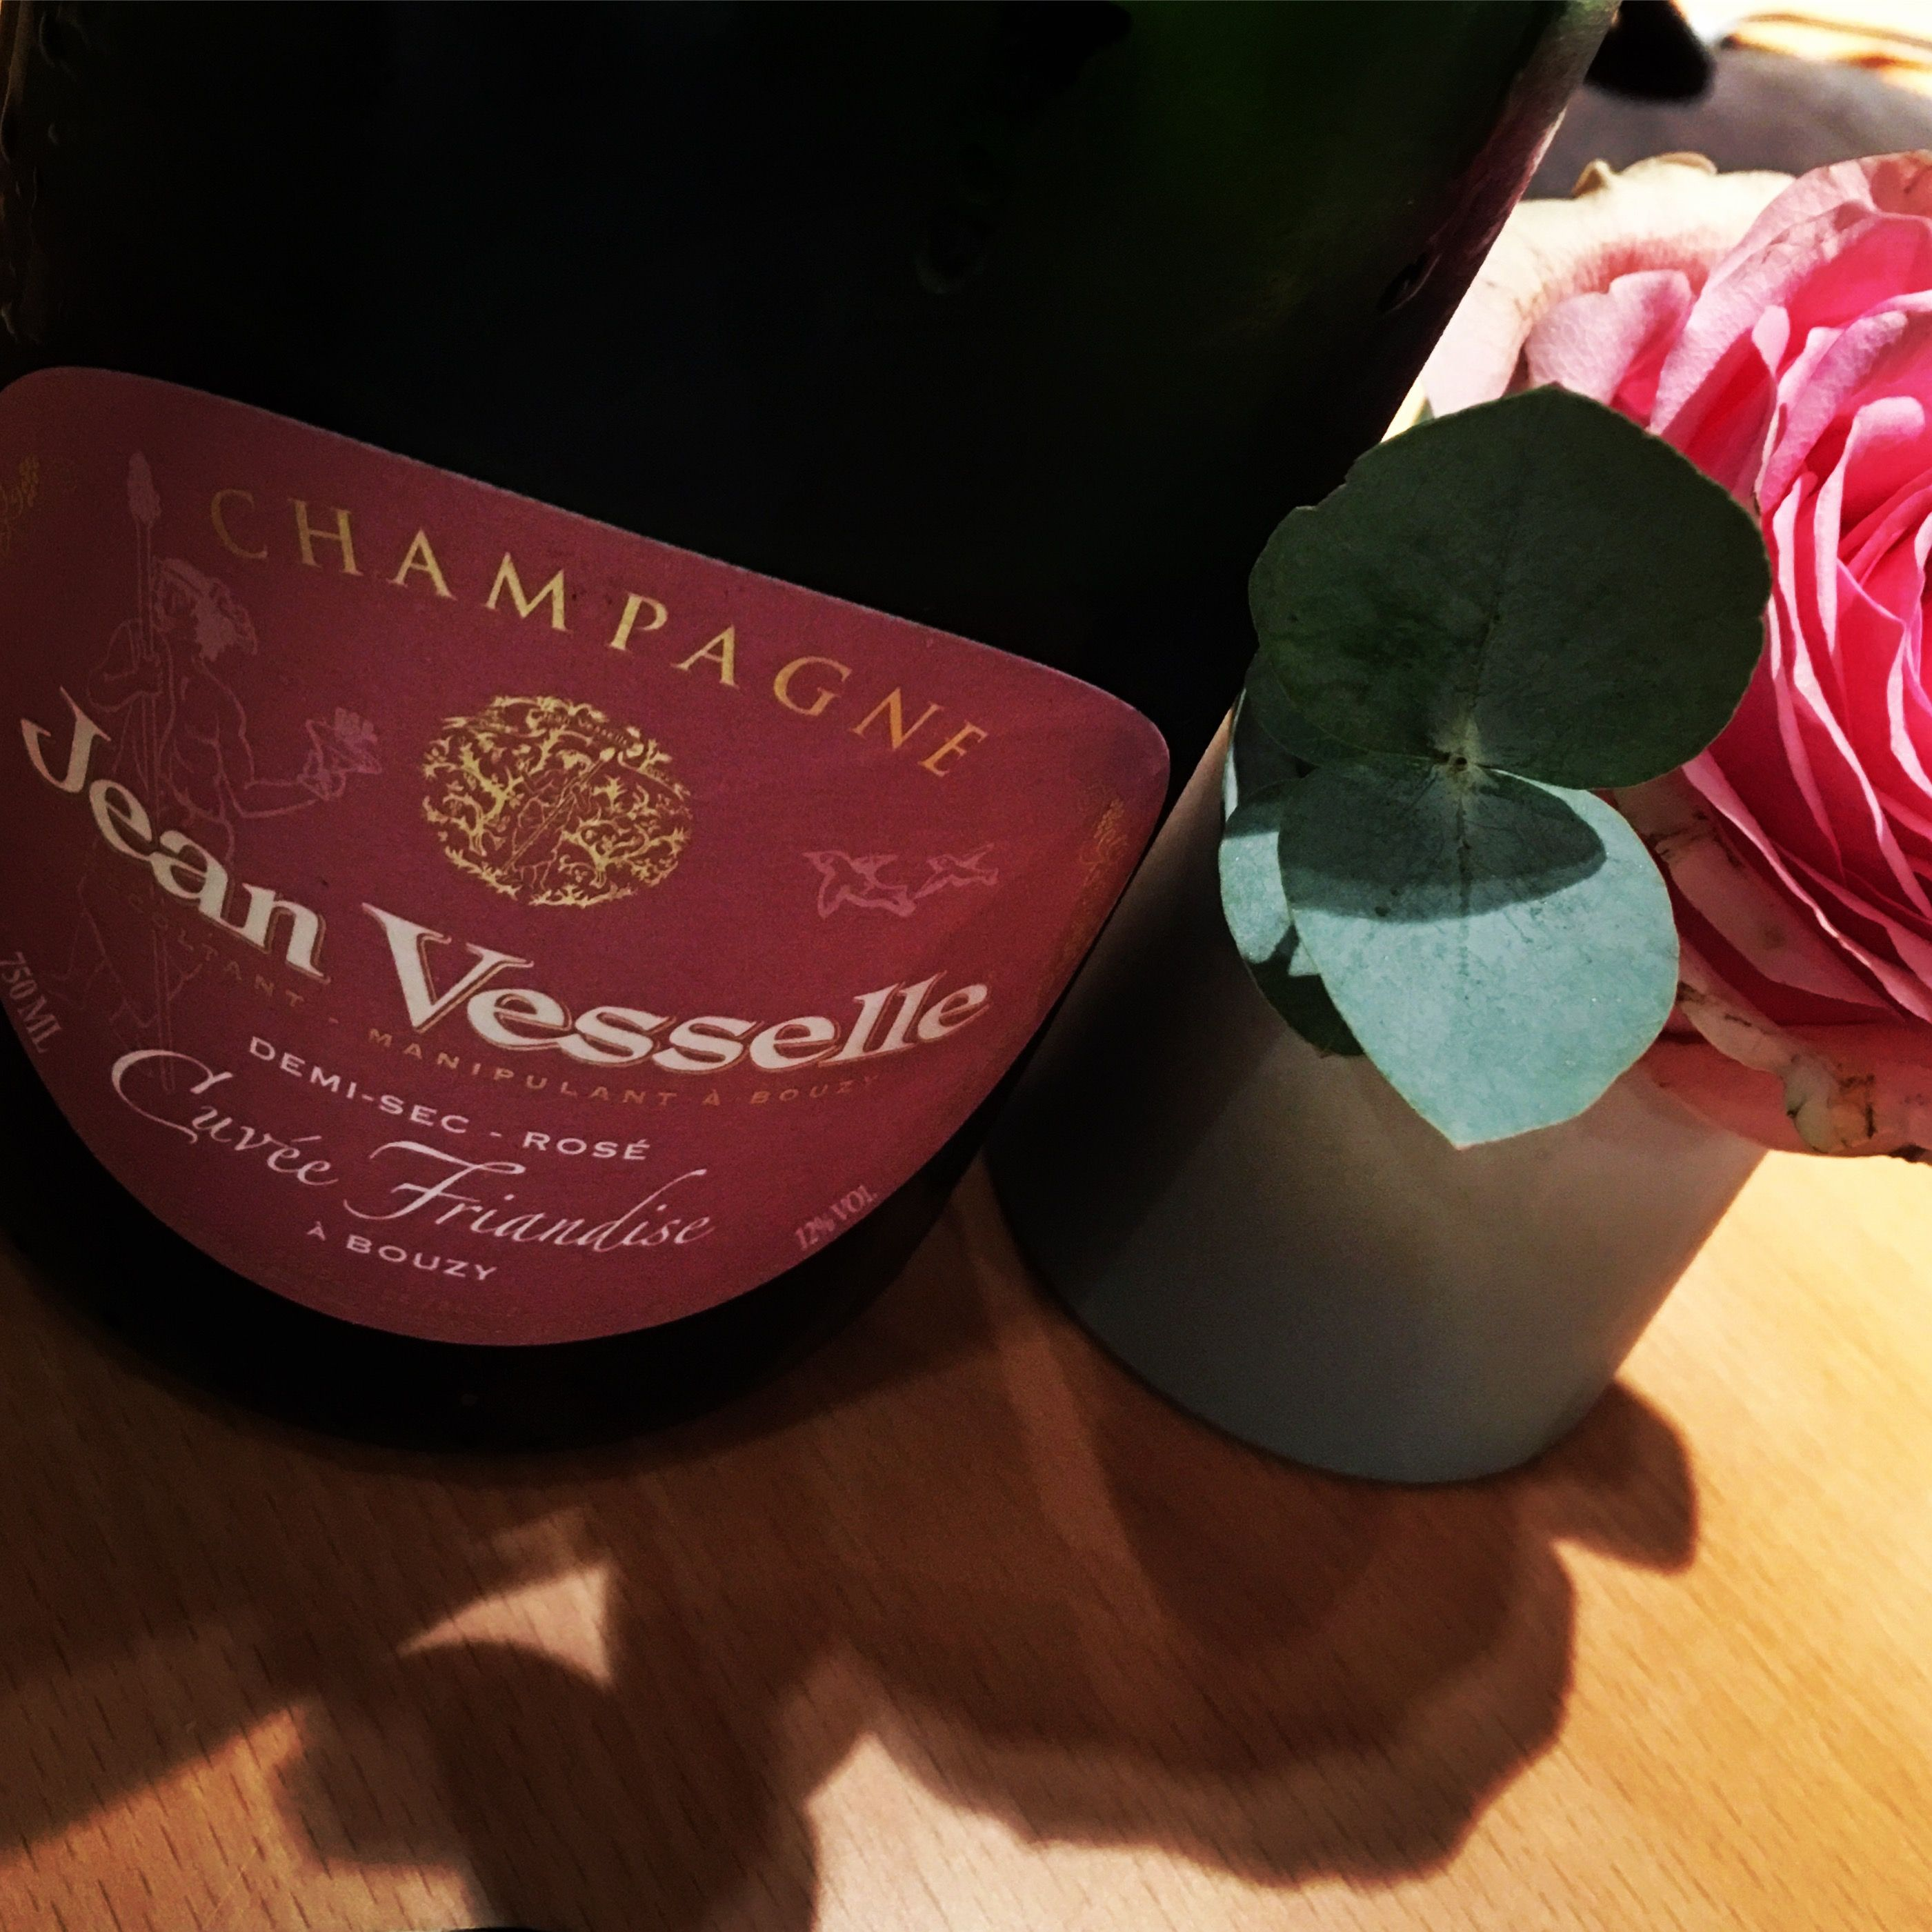 Jean Vesselle Bouzy Champagne Cuvee Friandise Demi Sec Rose Nv Champagne Cherry Clafoutis Sparkling Wine